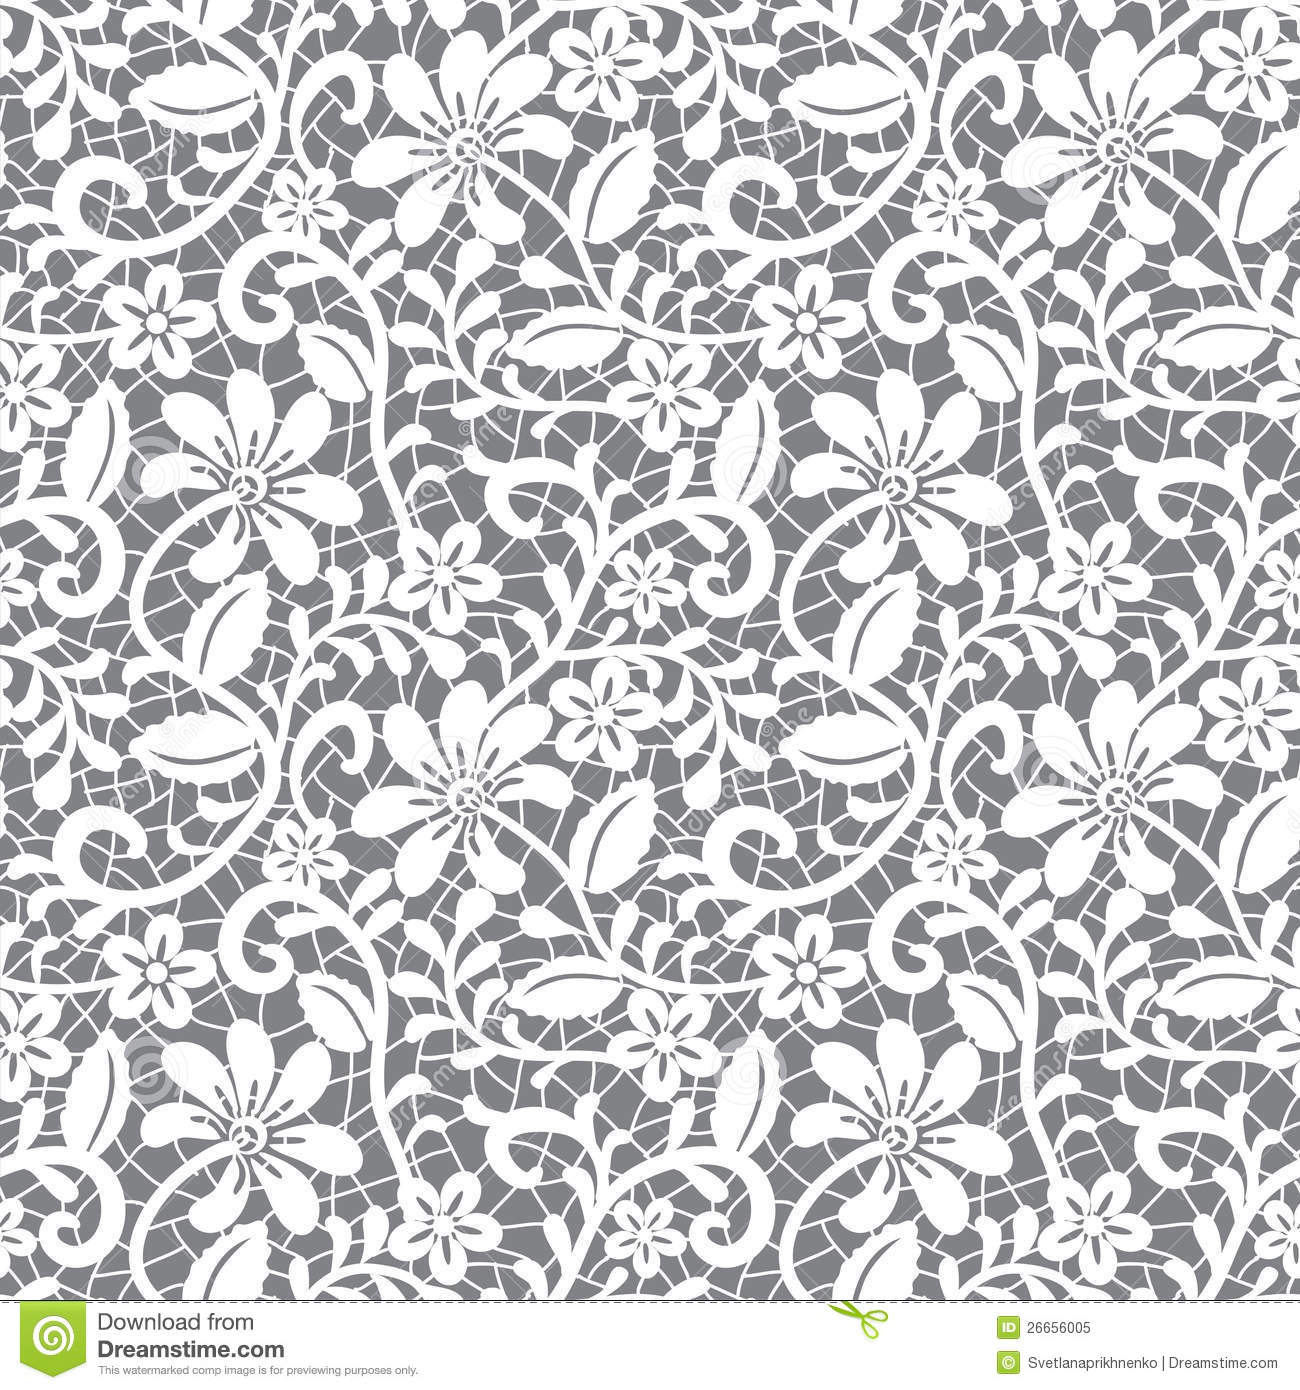 Download Lace Pattern Clipart-Download Lace Pattern Clipart-18